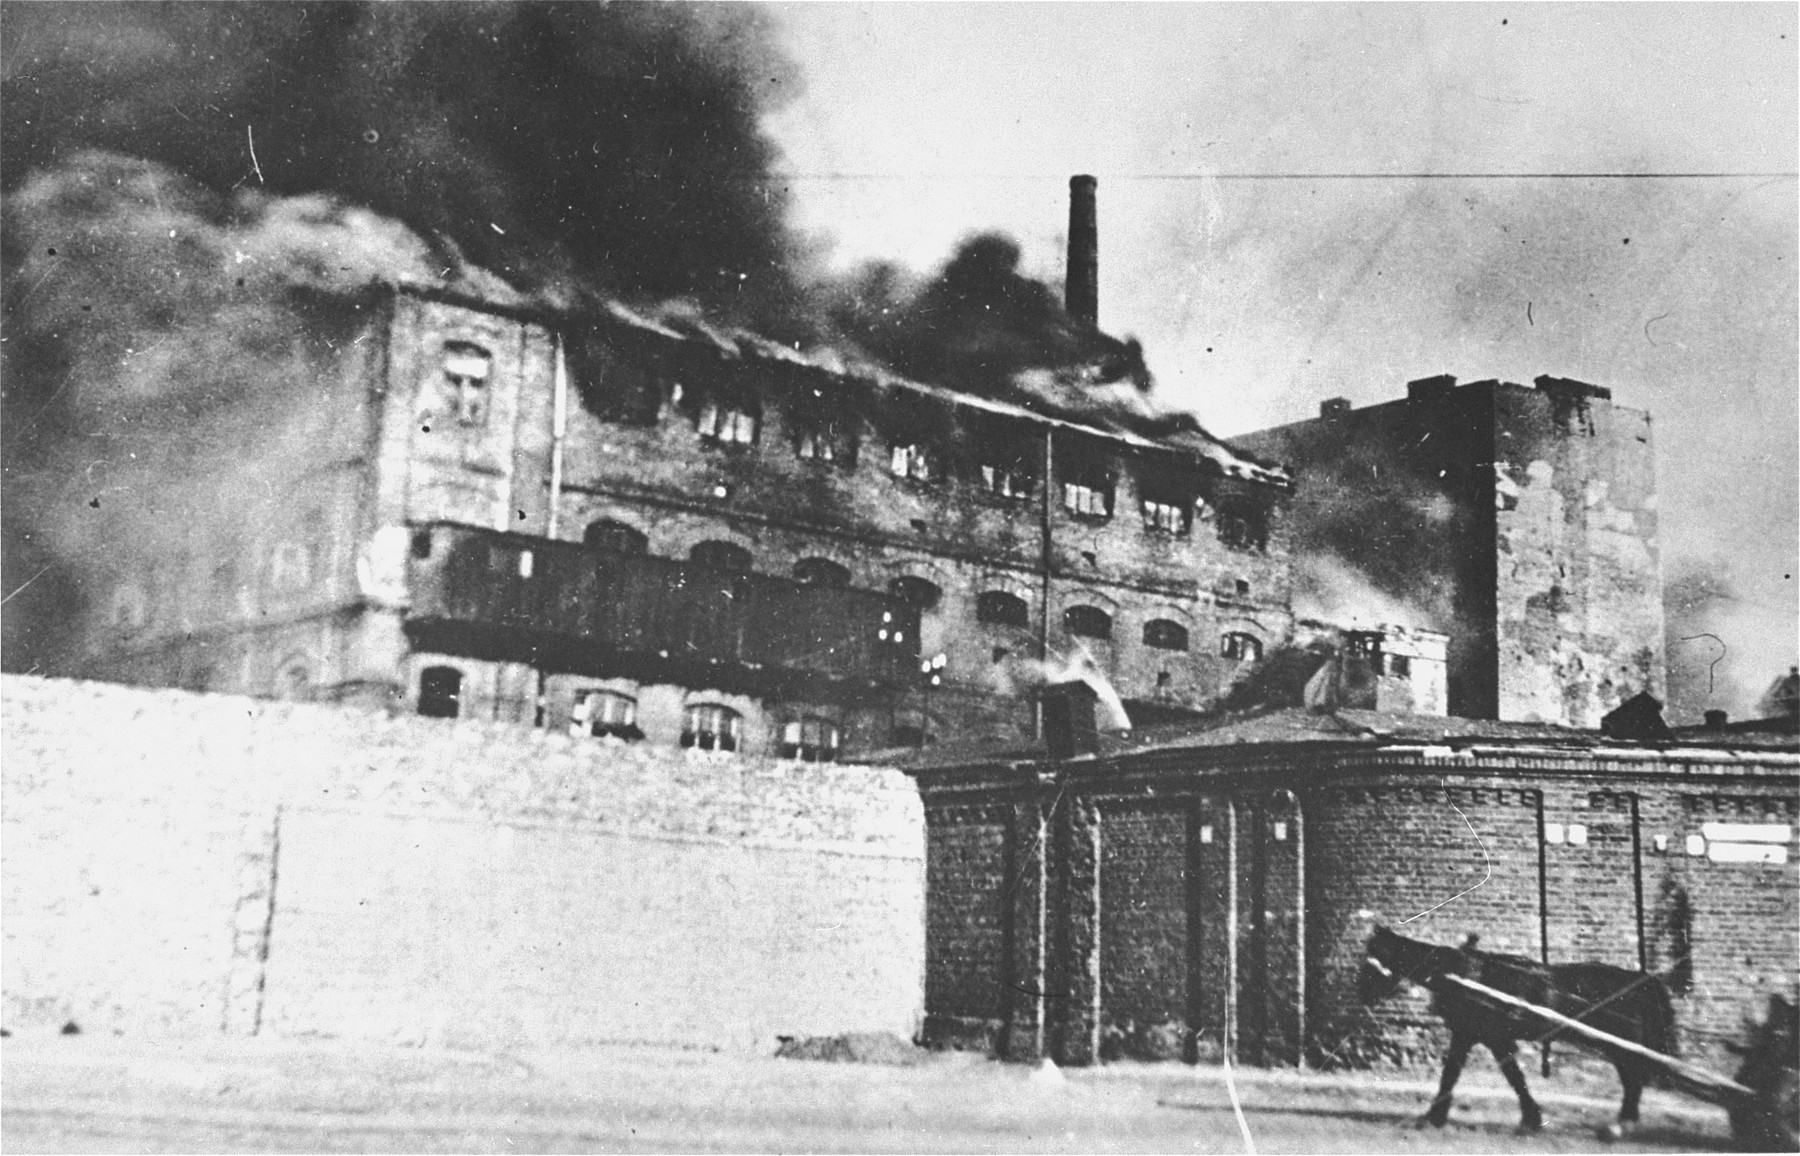 A factory razed by the SS burns during the suppression of the Warsaw ghetto uprising.